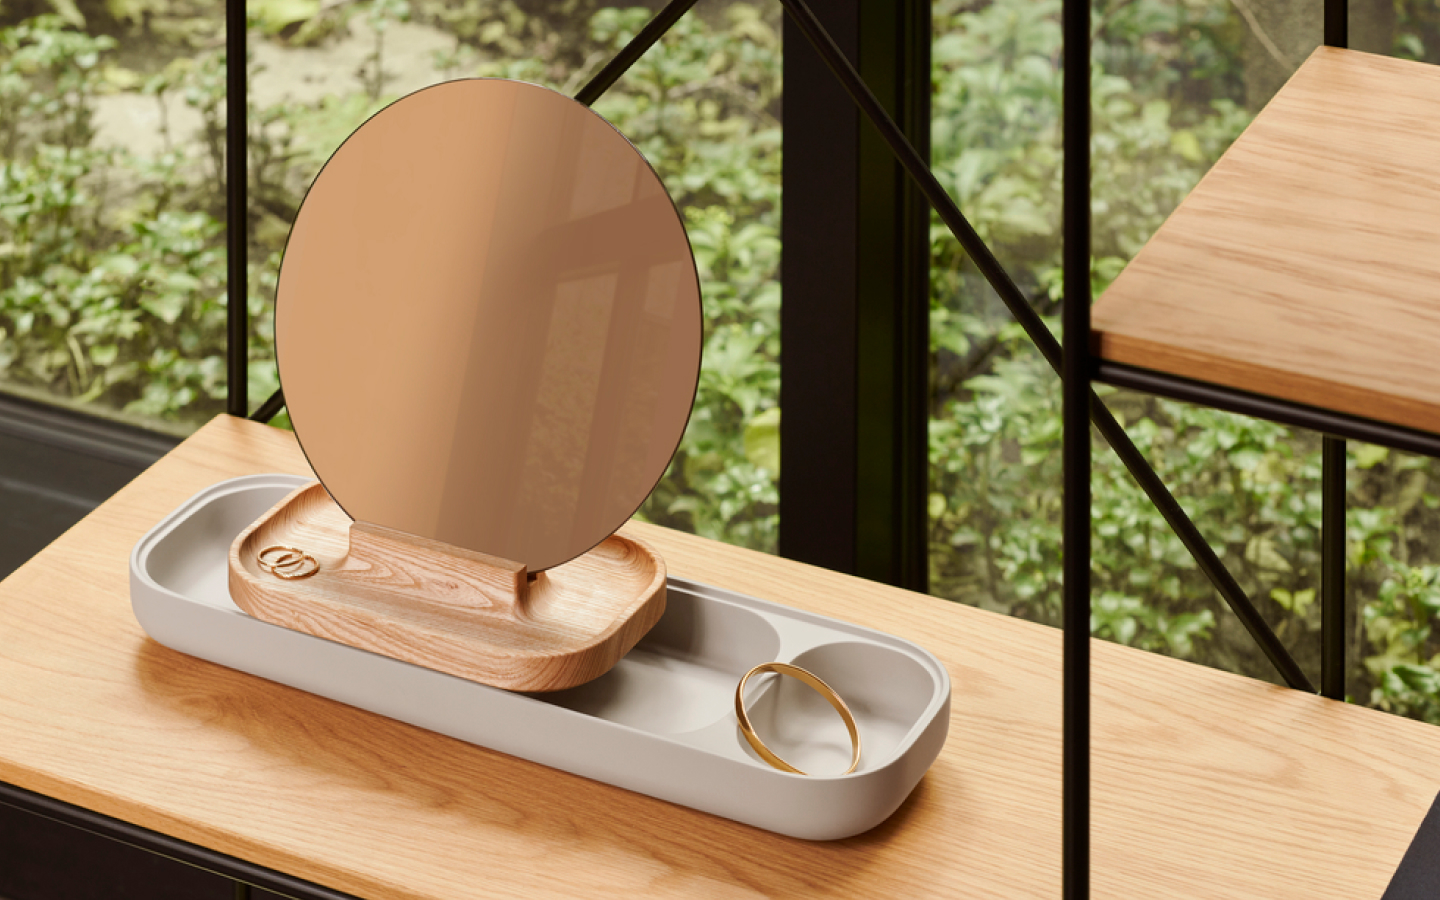 Round table mirror with wooden tray base